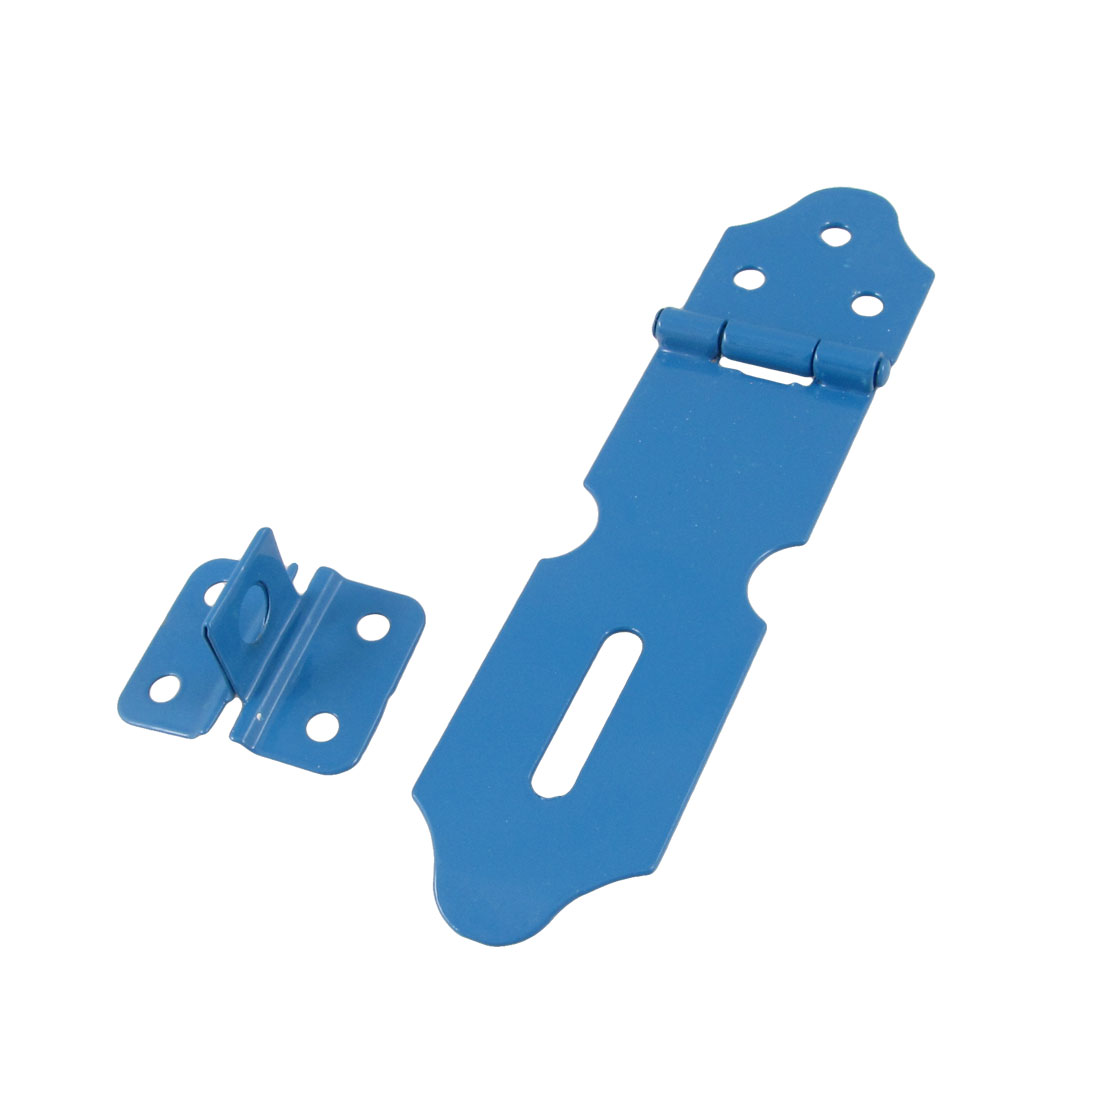 "Drawer Cupboard Doors Metal Latch Staple 5"" Hasp Set Blue"